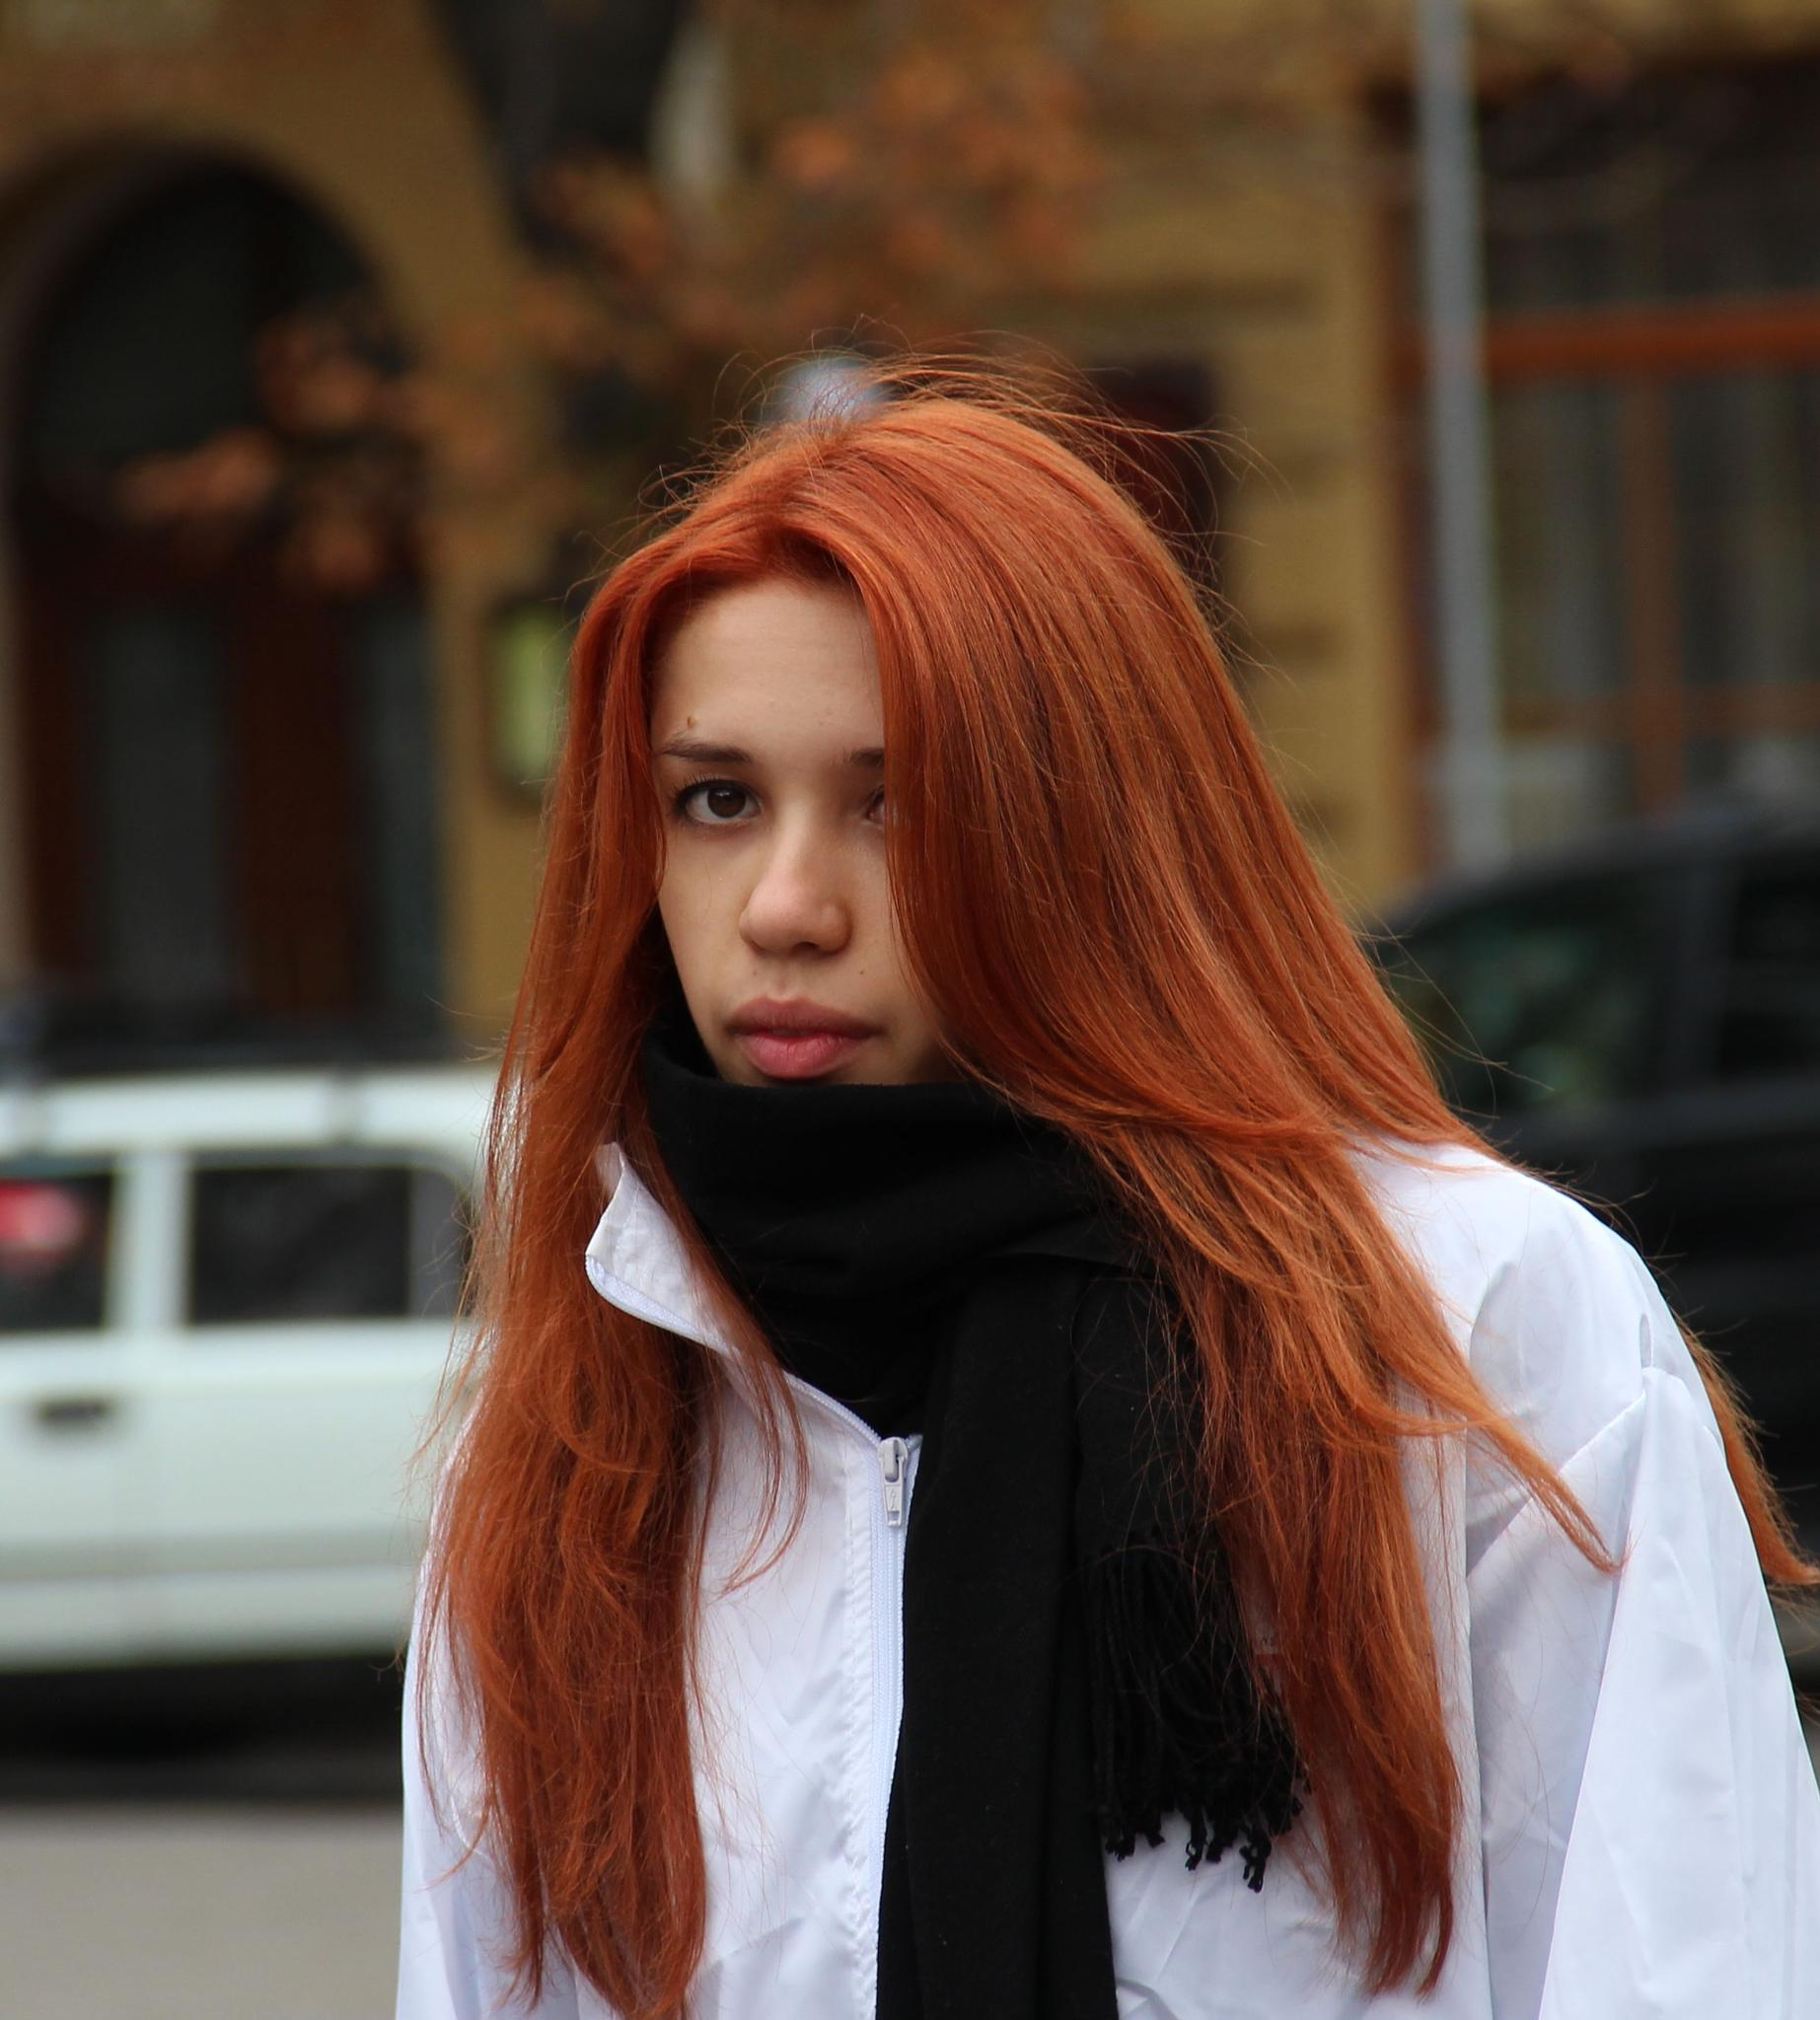 Streets of Lvov - beautiful girl of Lvov by Stanislaw Bomba